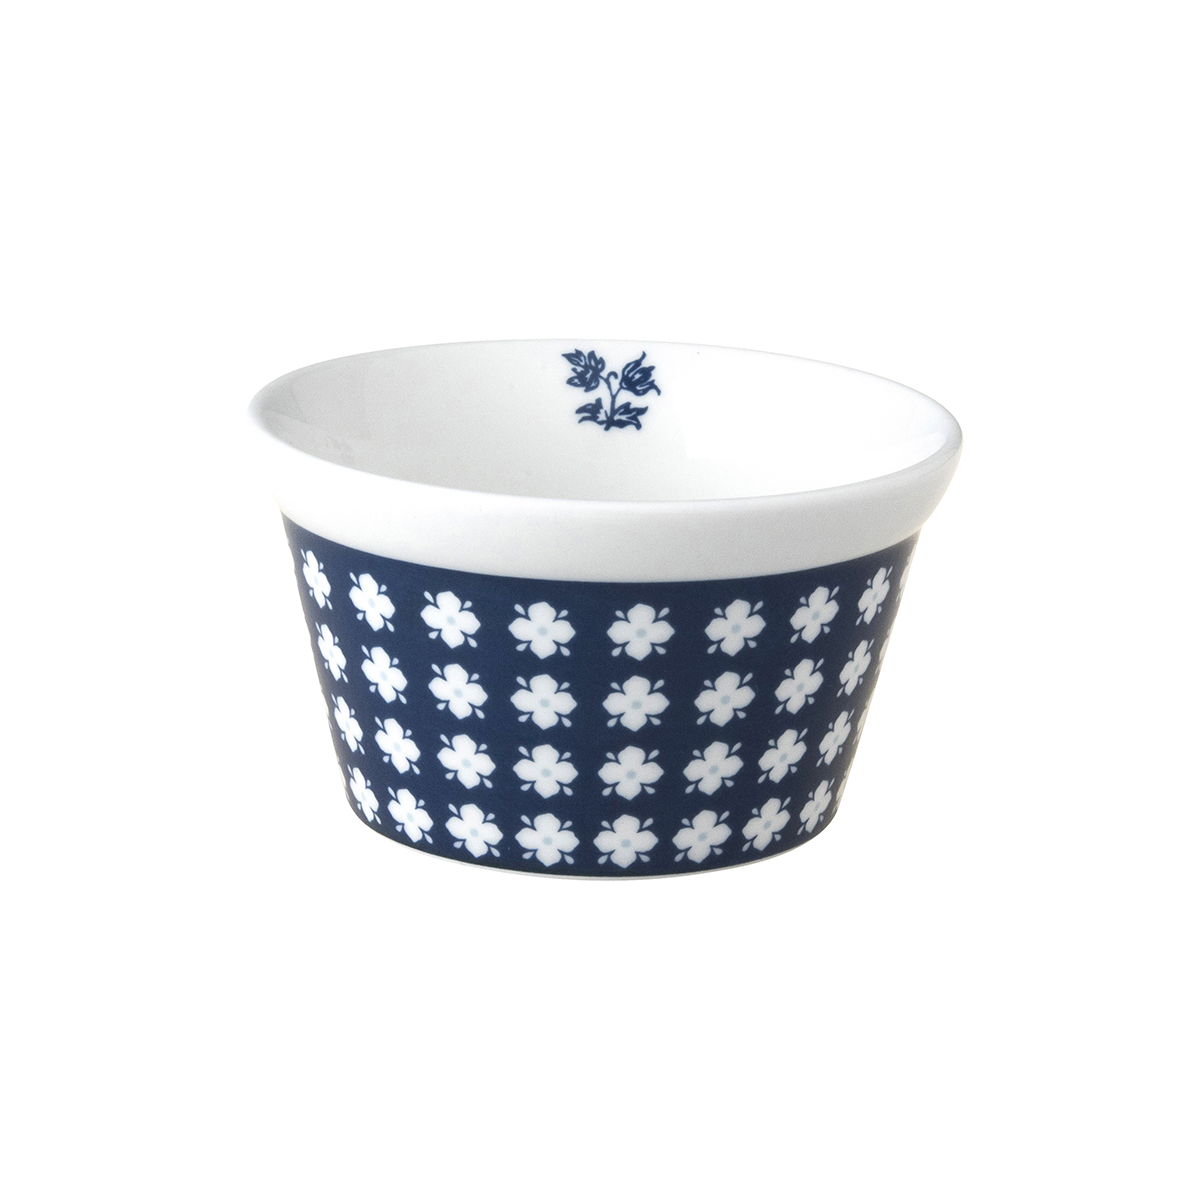 Ramekin-9-daisy-laura-ashley-179360